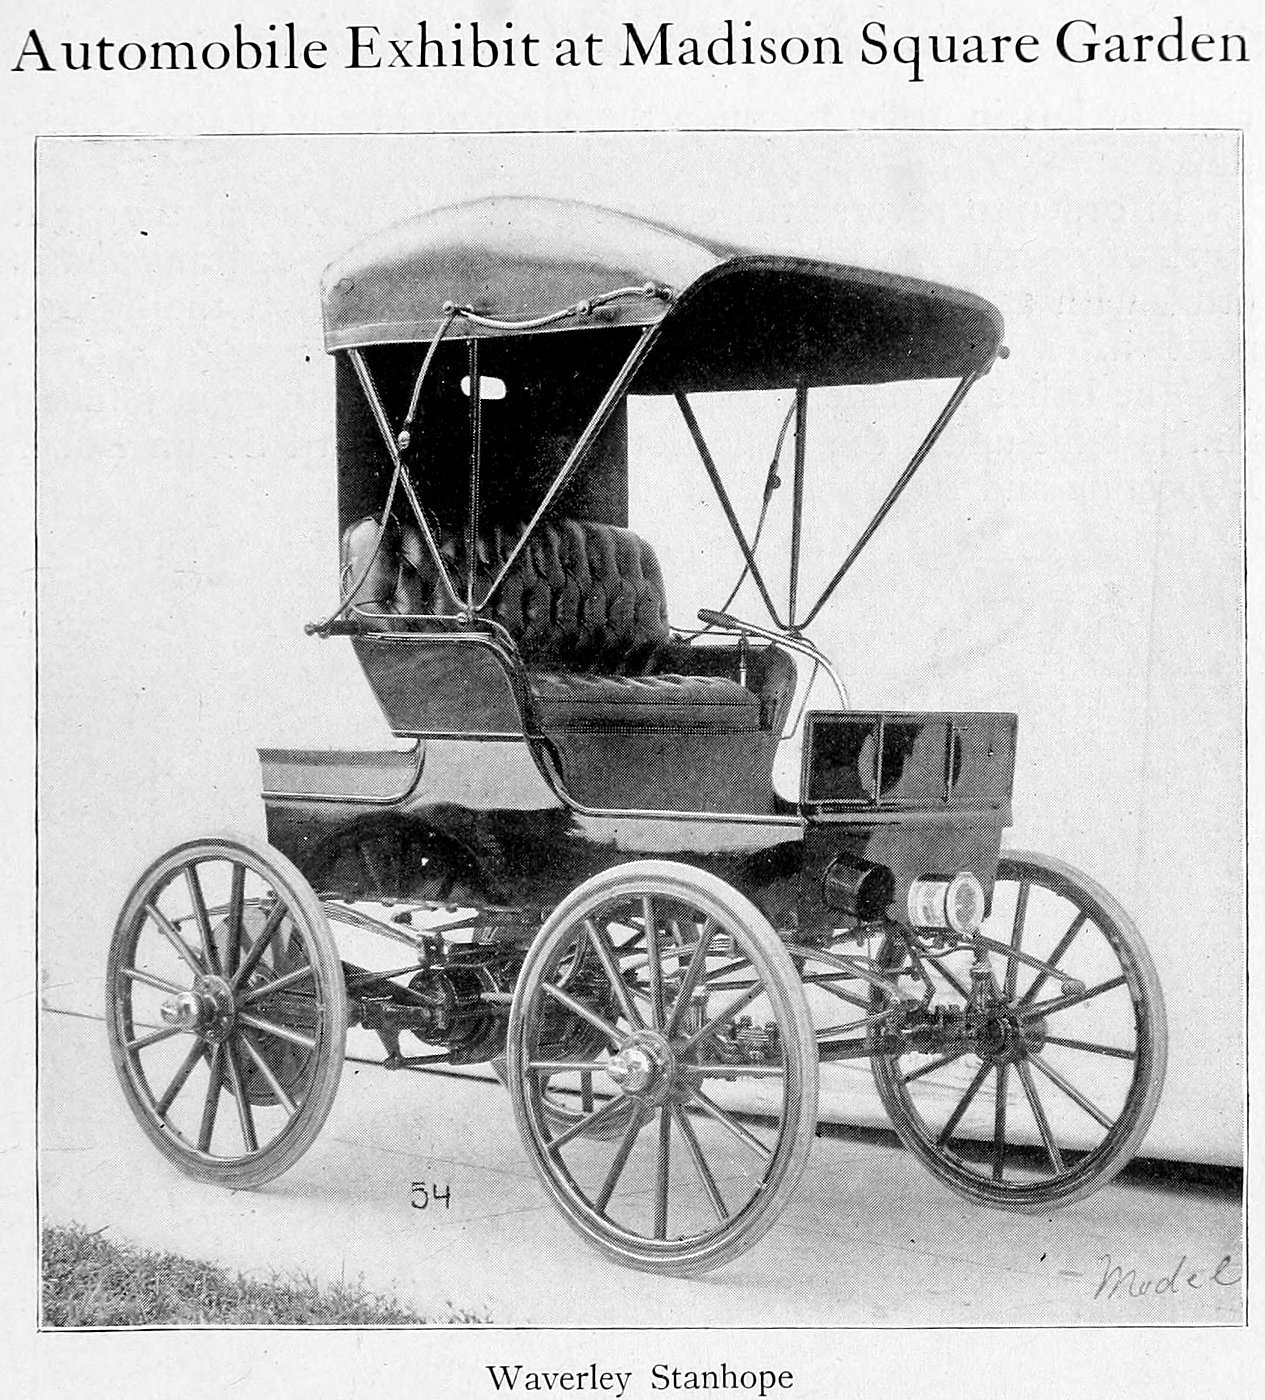 Vintage Waverly Stanhope motor car (1900)